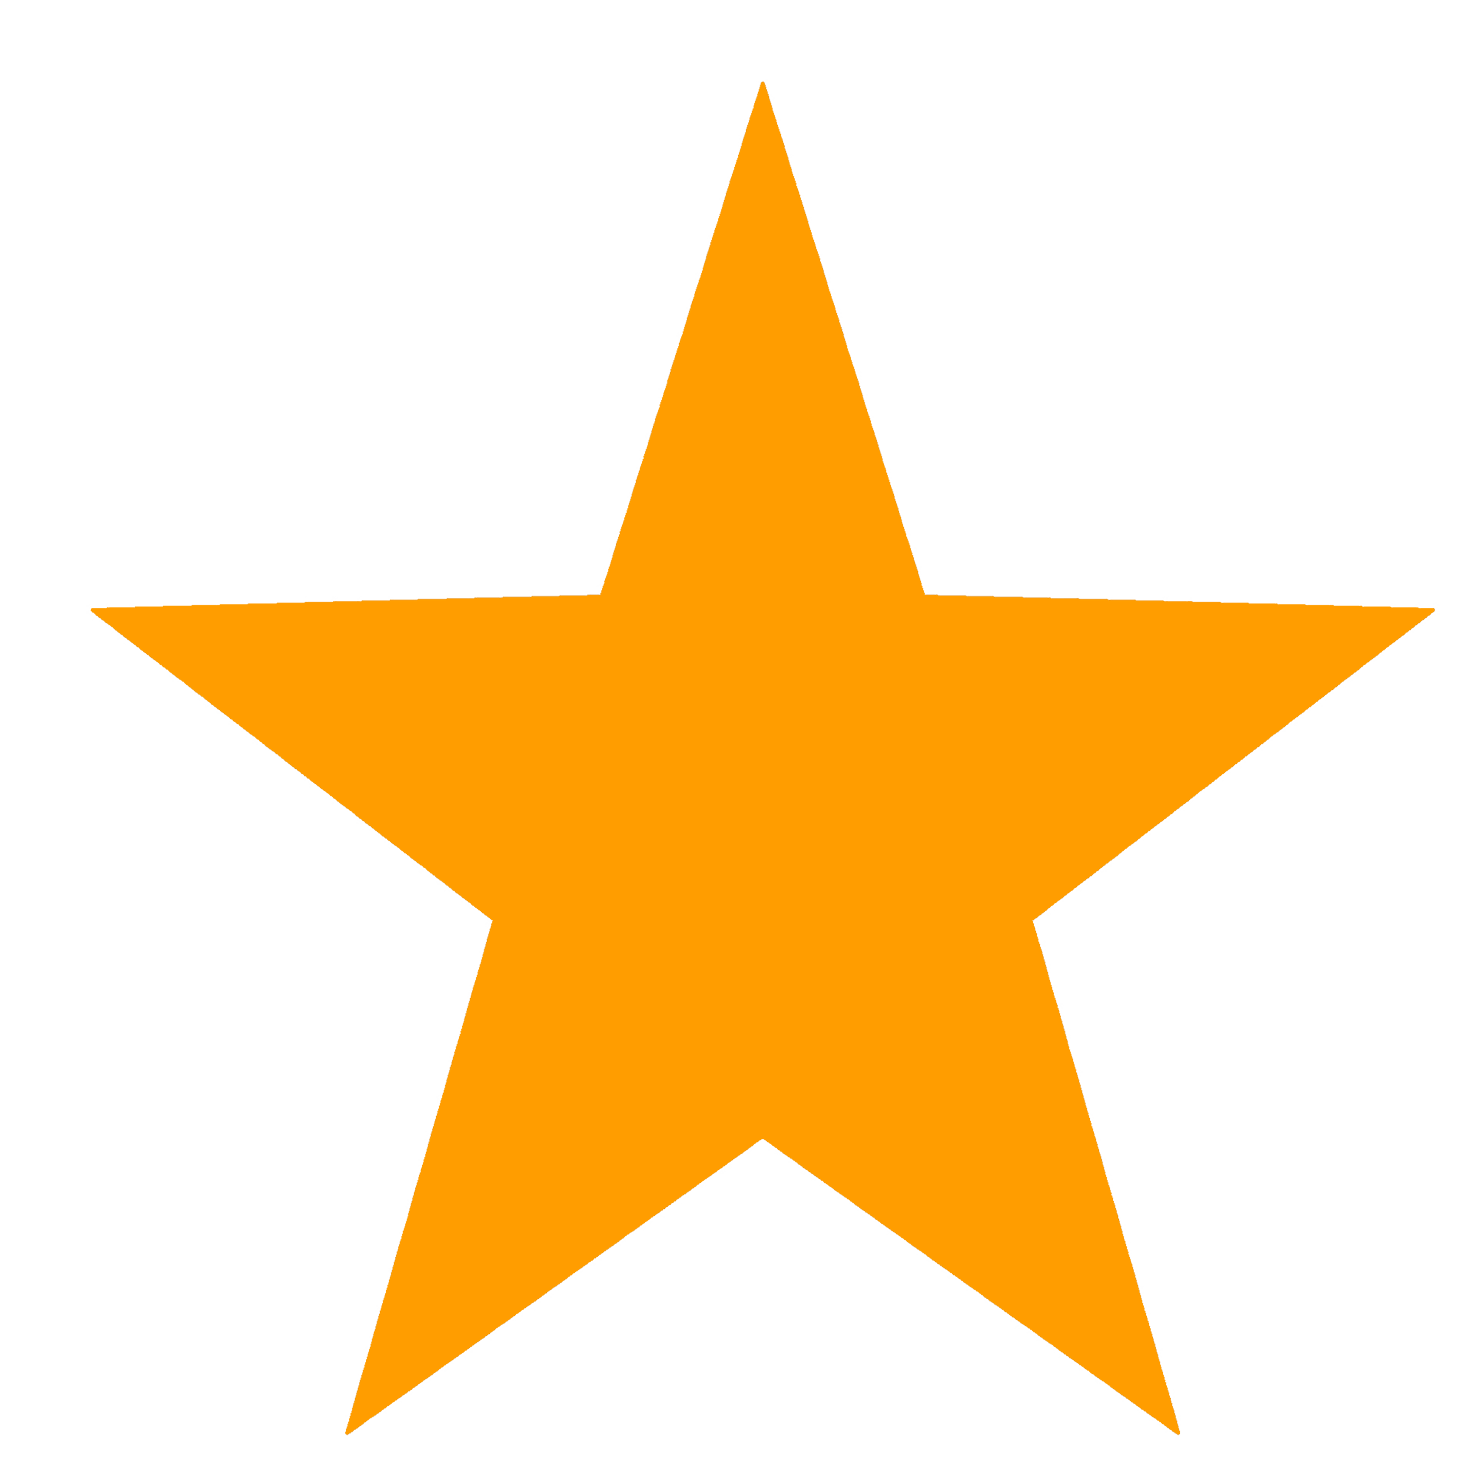 Star clipart. Orange png red template